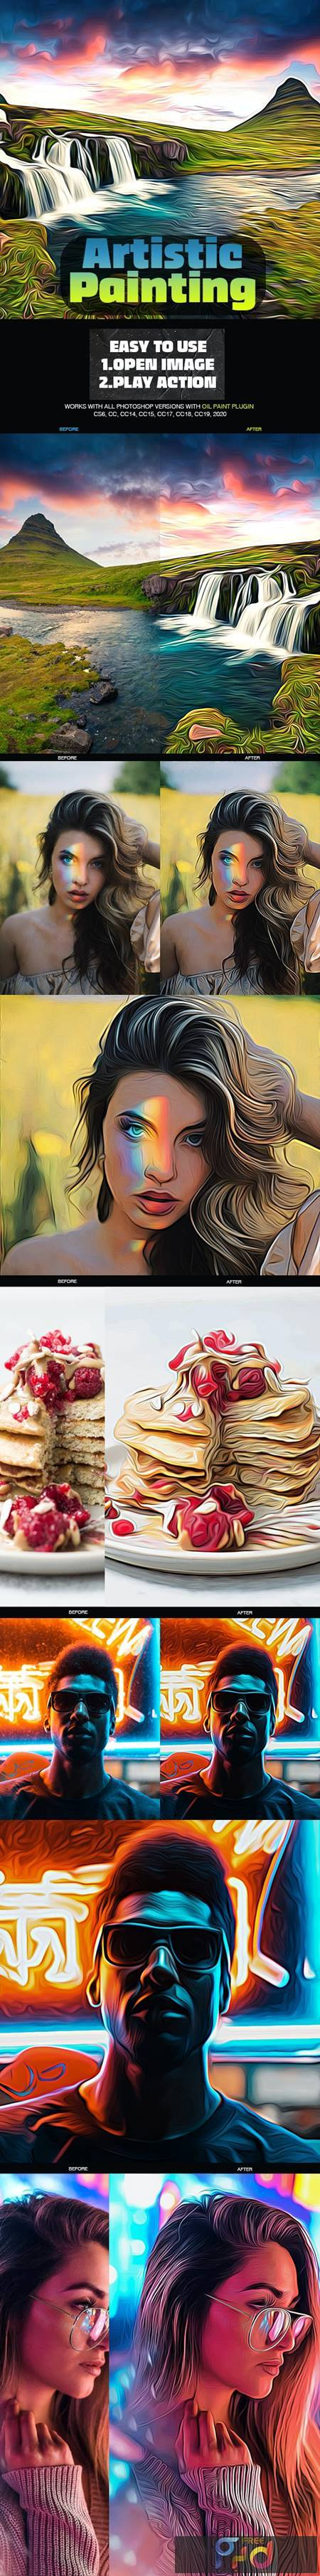 Artistic Painting Photoshop Action 26590064 1